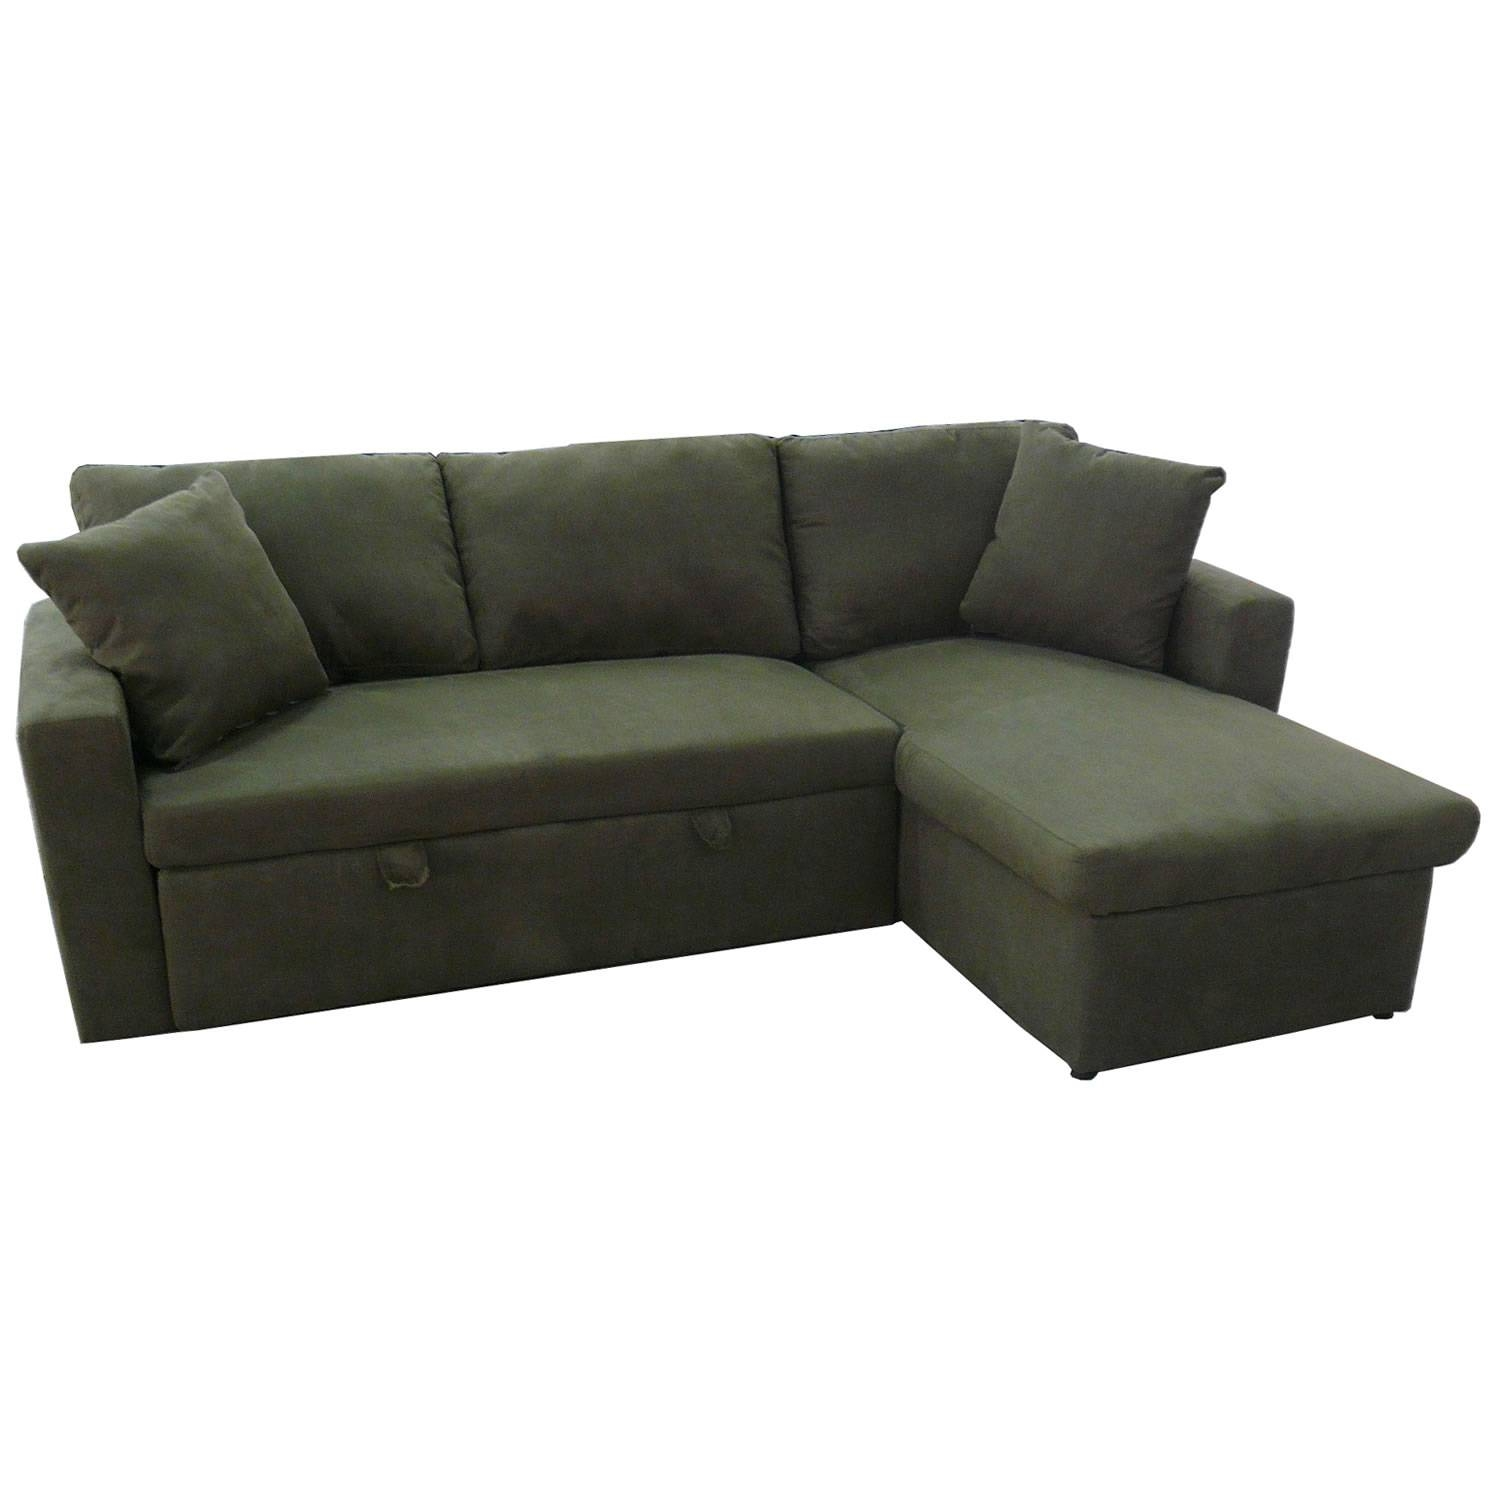 Cheap Corner Sofas For Sale. Cheap Sofas Online Blake Coffee with Cheap Corner Sofa Bed (Image 4 of 30)